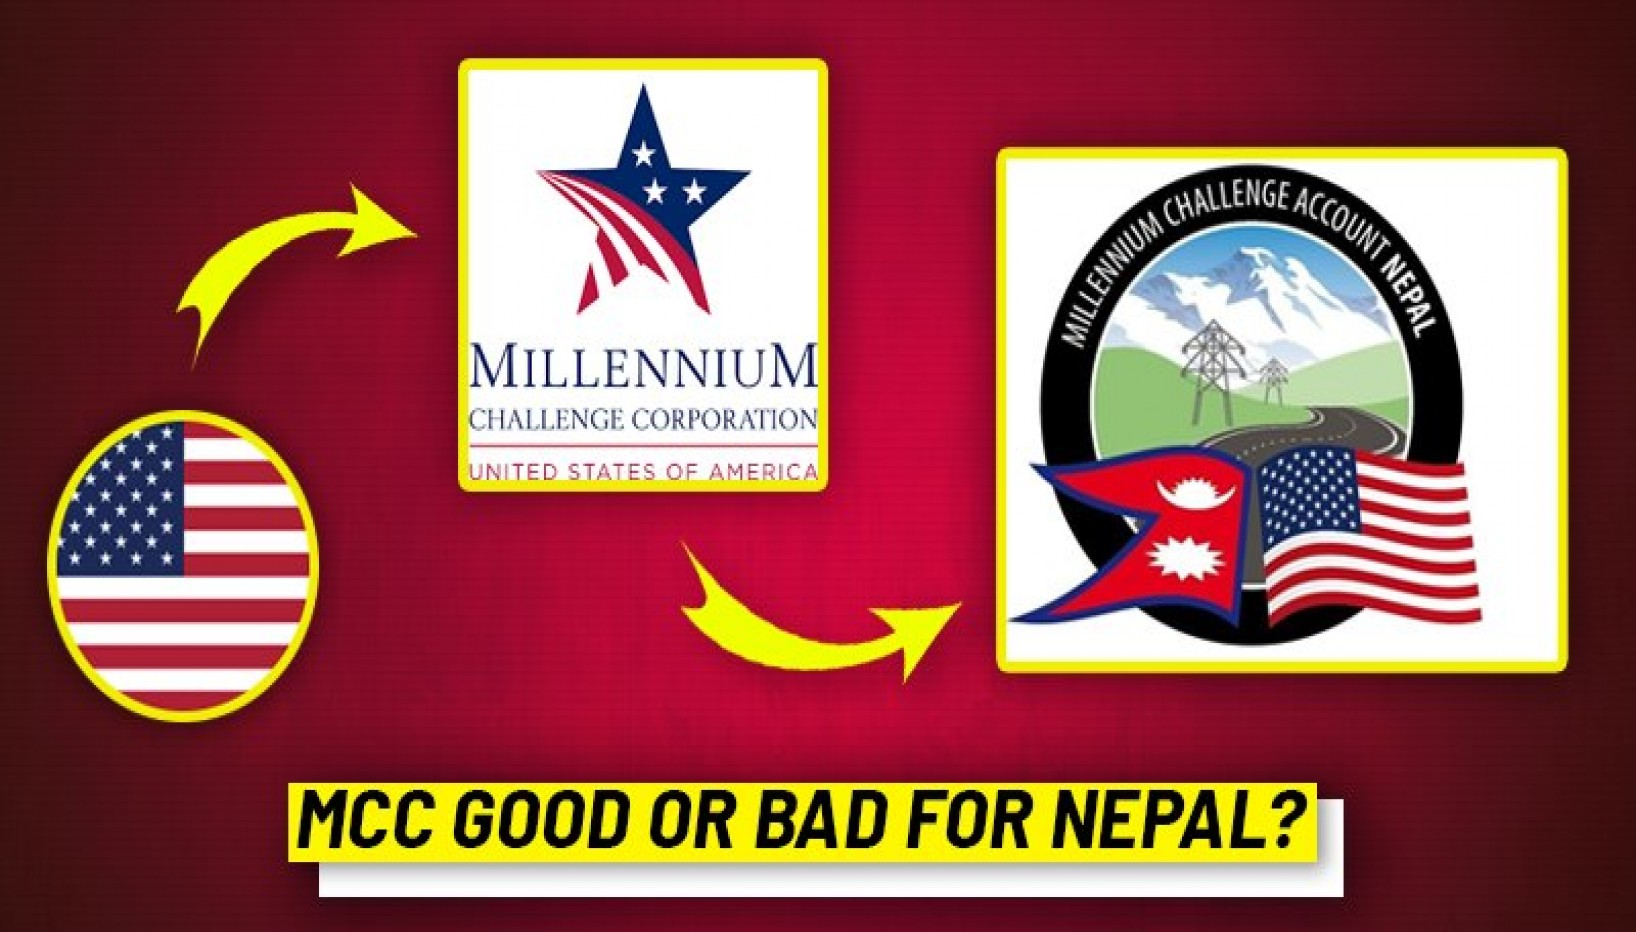 Is MCC Good Or Bad For Nepal? Here Are The Facts — From The Pros To The Cons